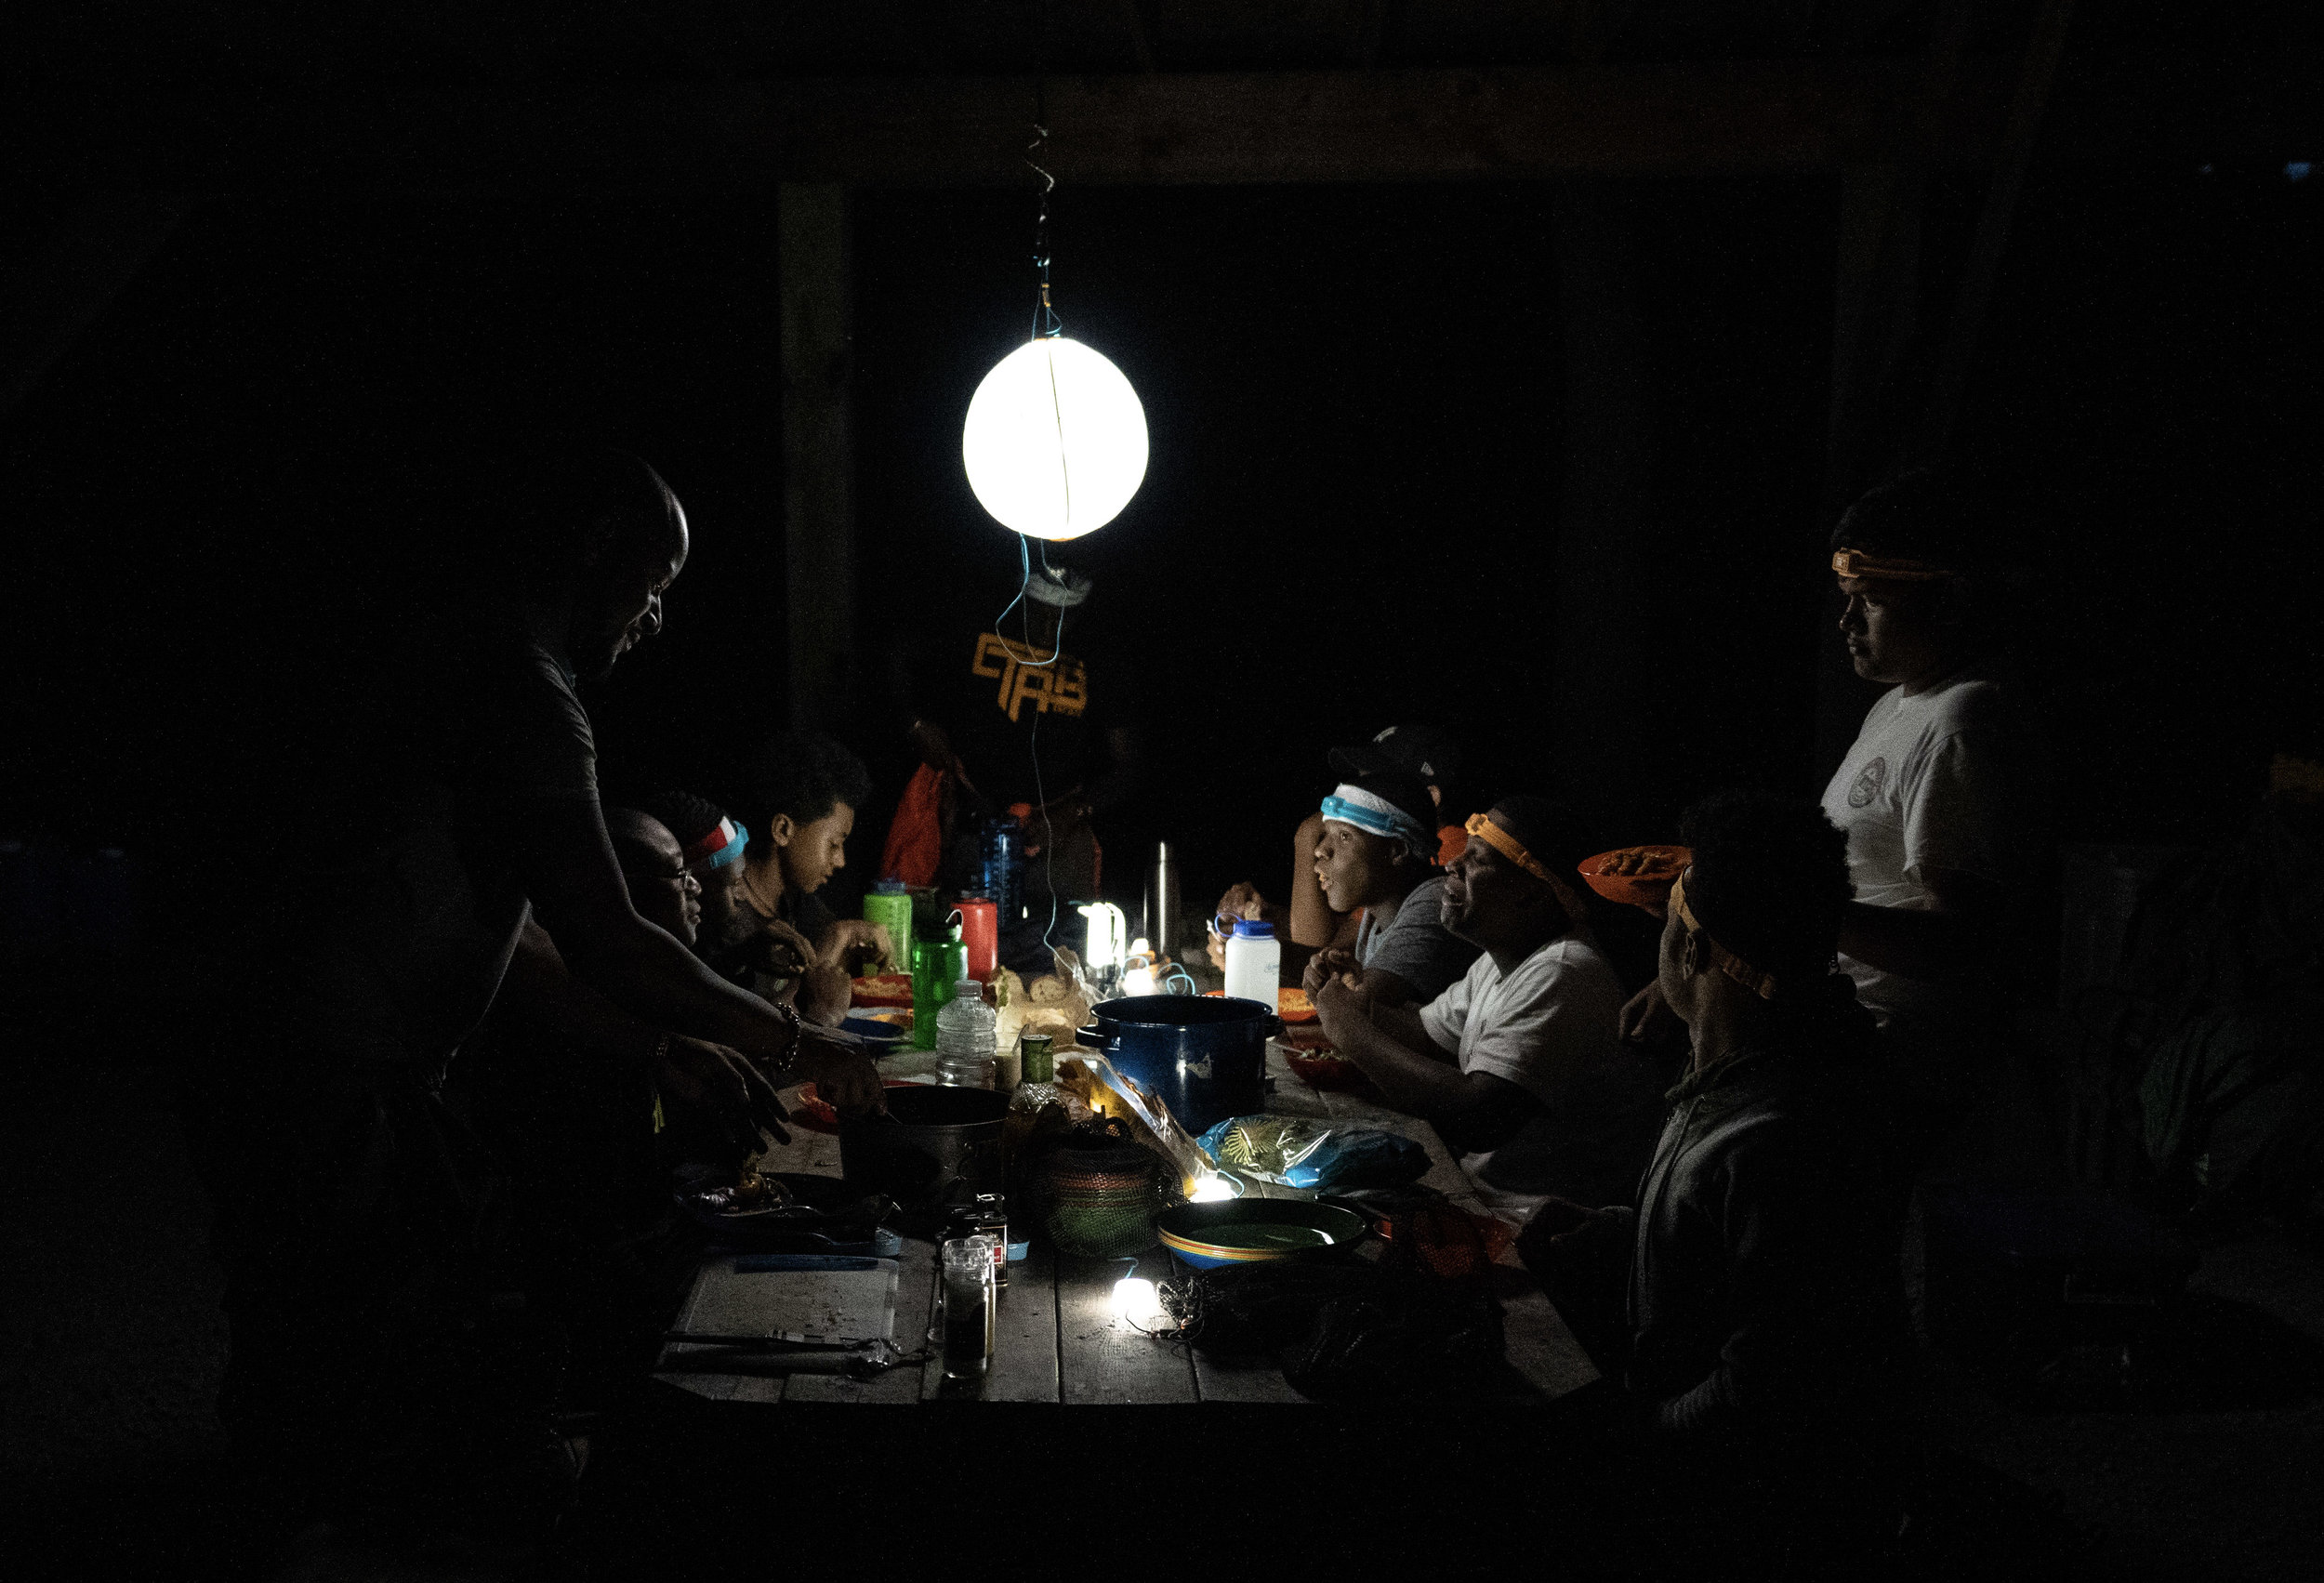 Biolite lamps helped with chow time